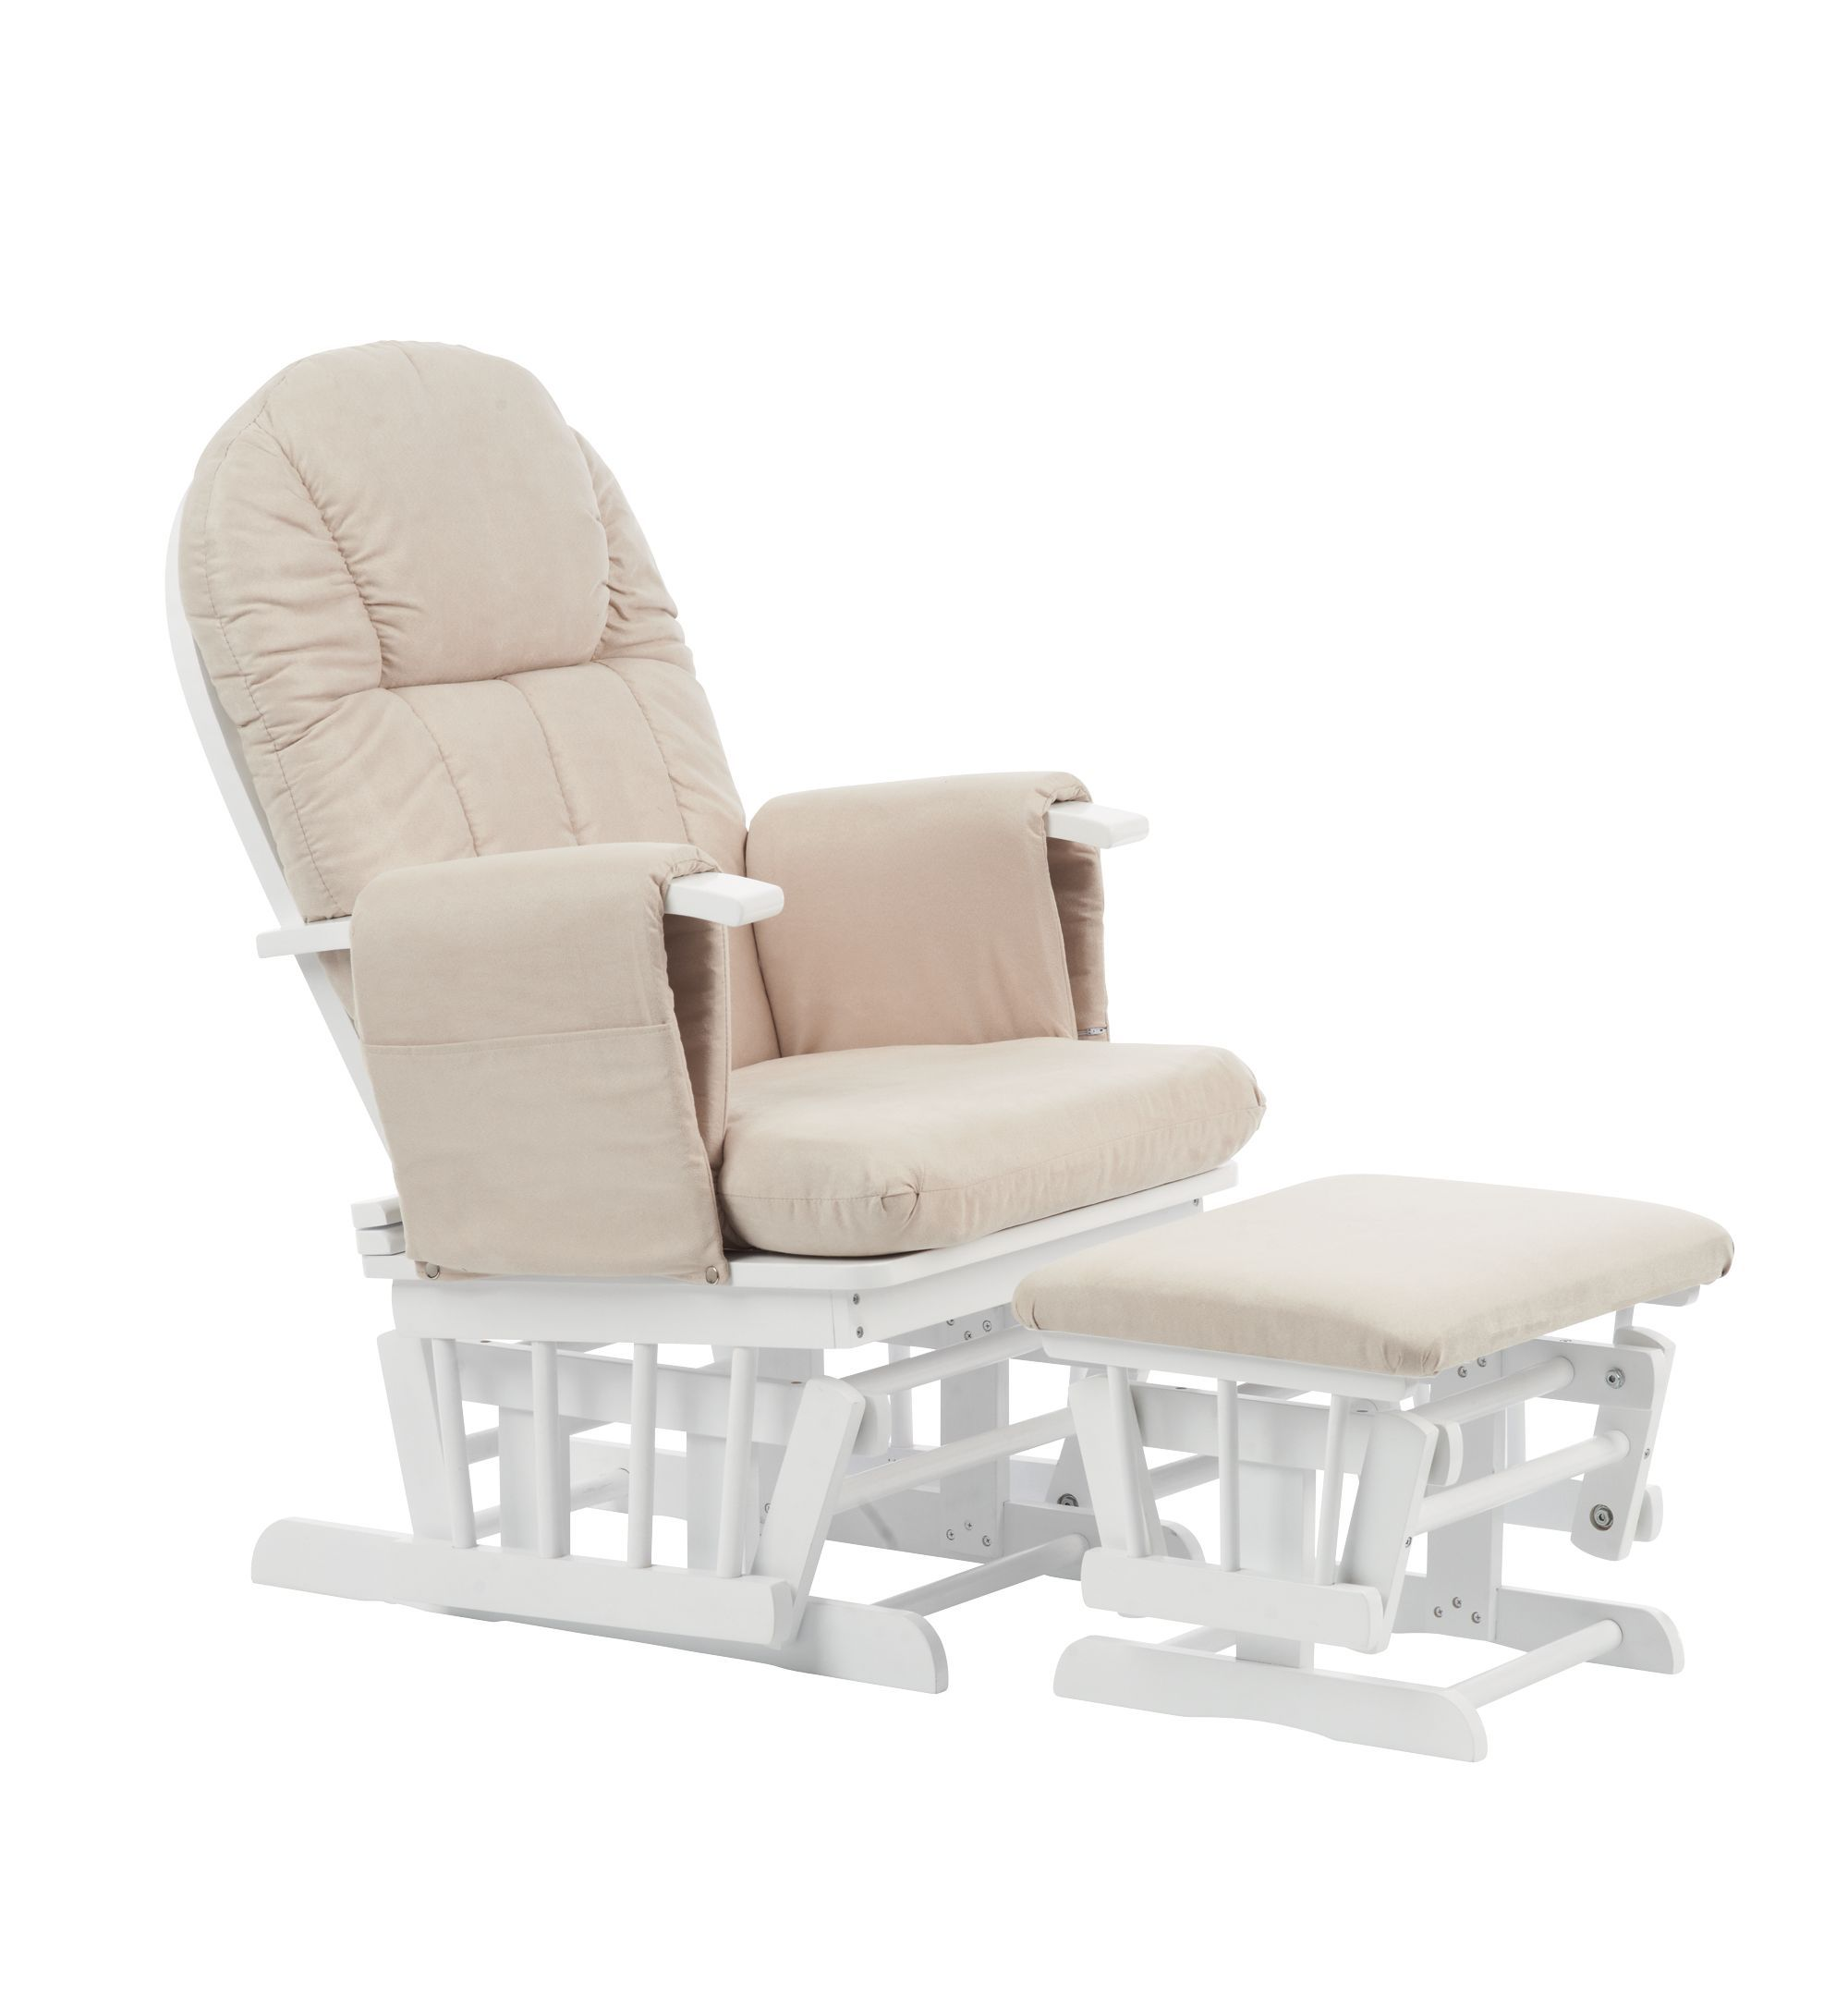 Mothercare Reclining Glider Chair White Baby Stuff